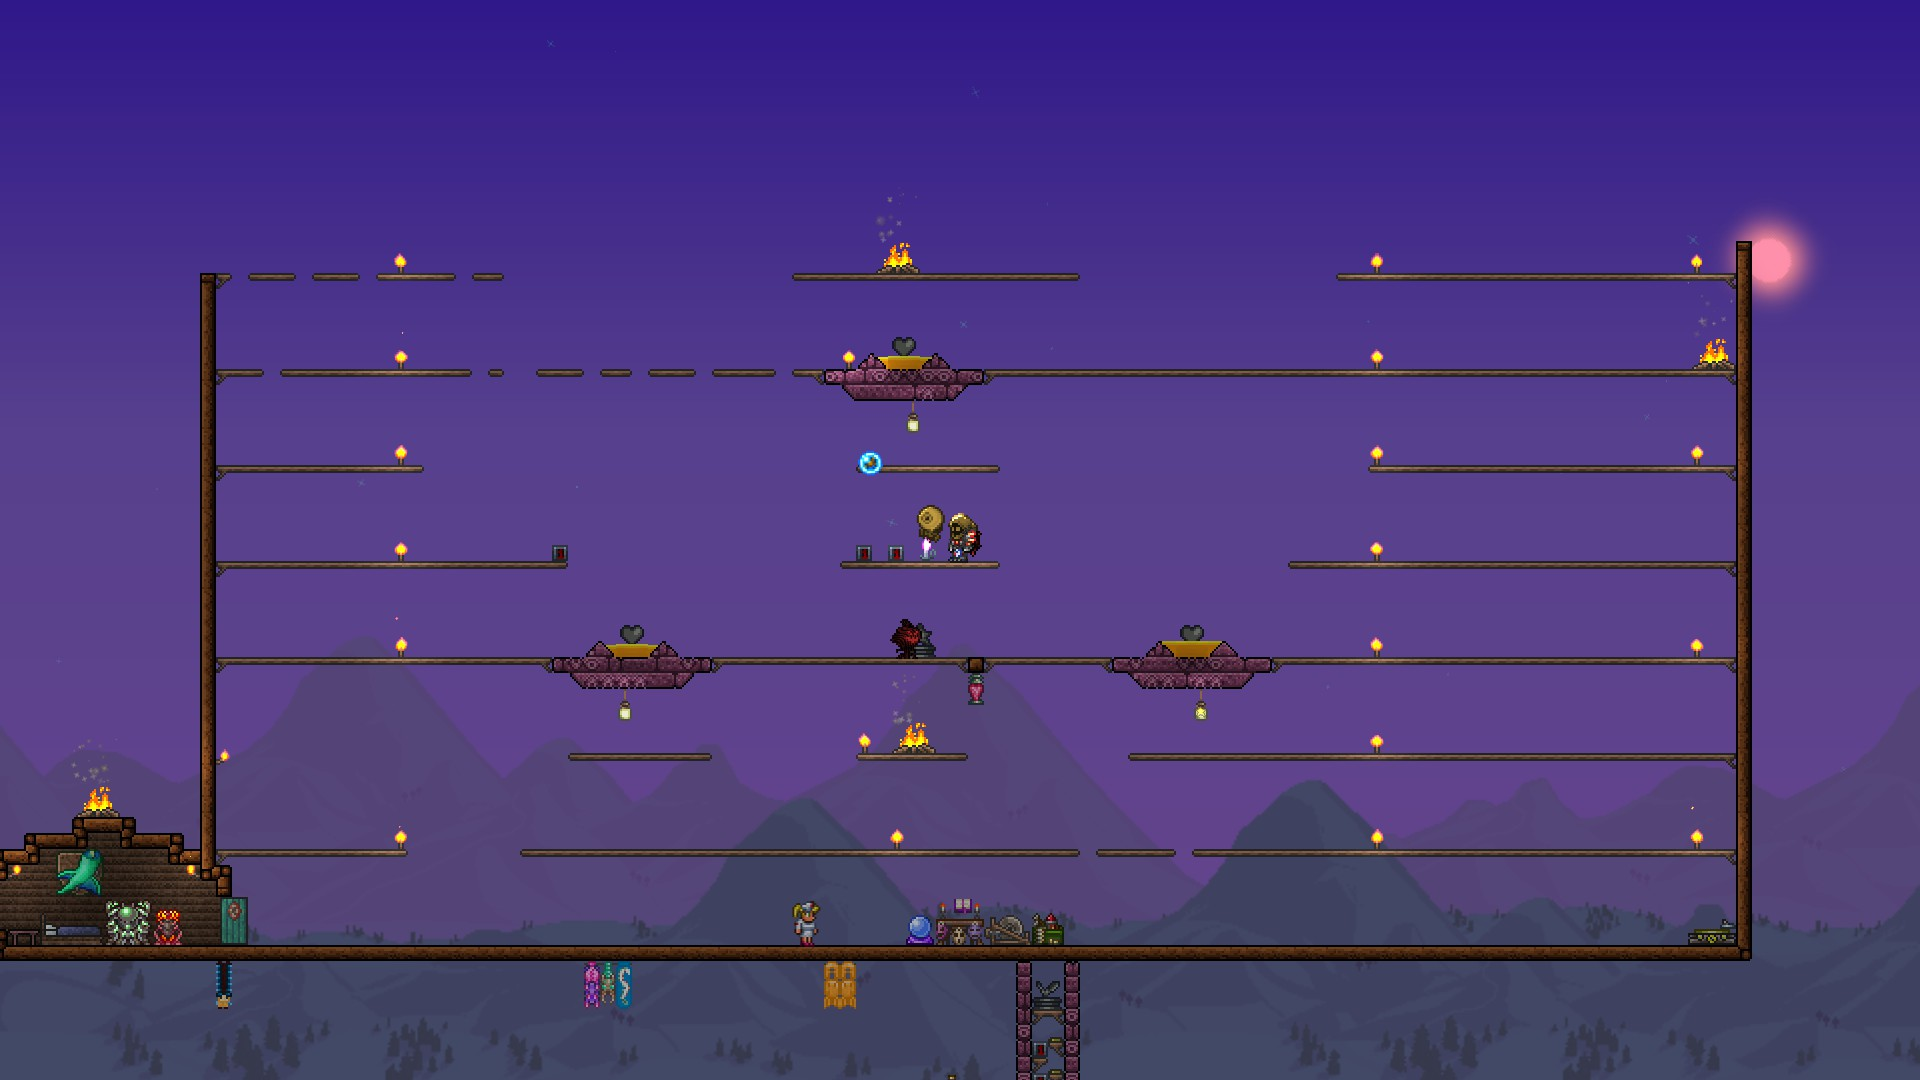 Steam Community Guide Expert Moon Lord Strategy Wiring Terraria The Arena Is A Big One And Has Many Things Required To Make It Work I Will Give You An Image Should Try Copy